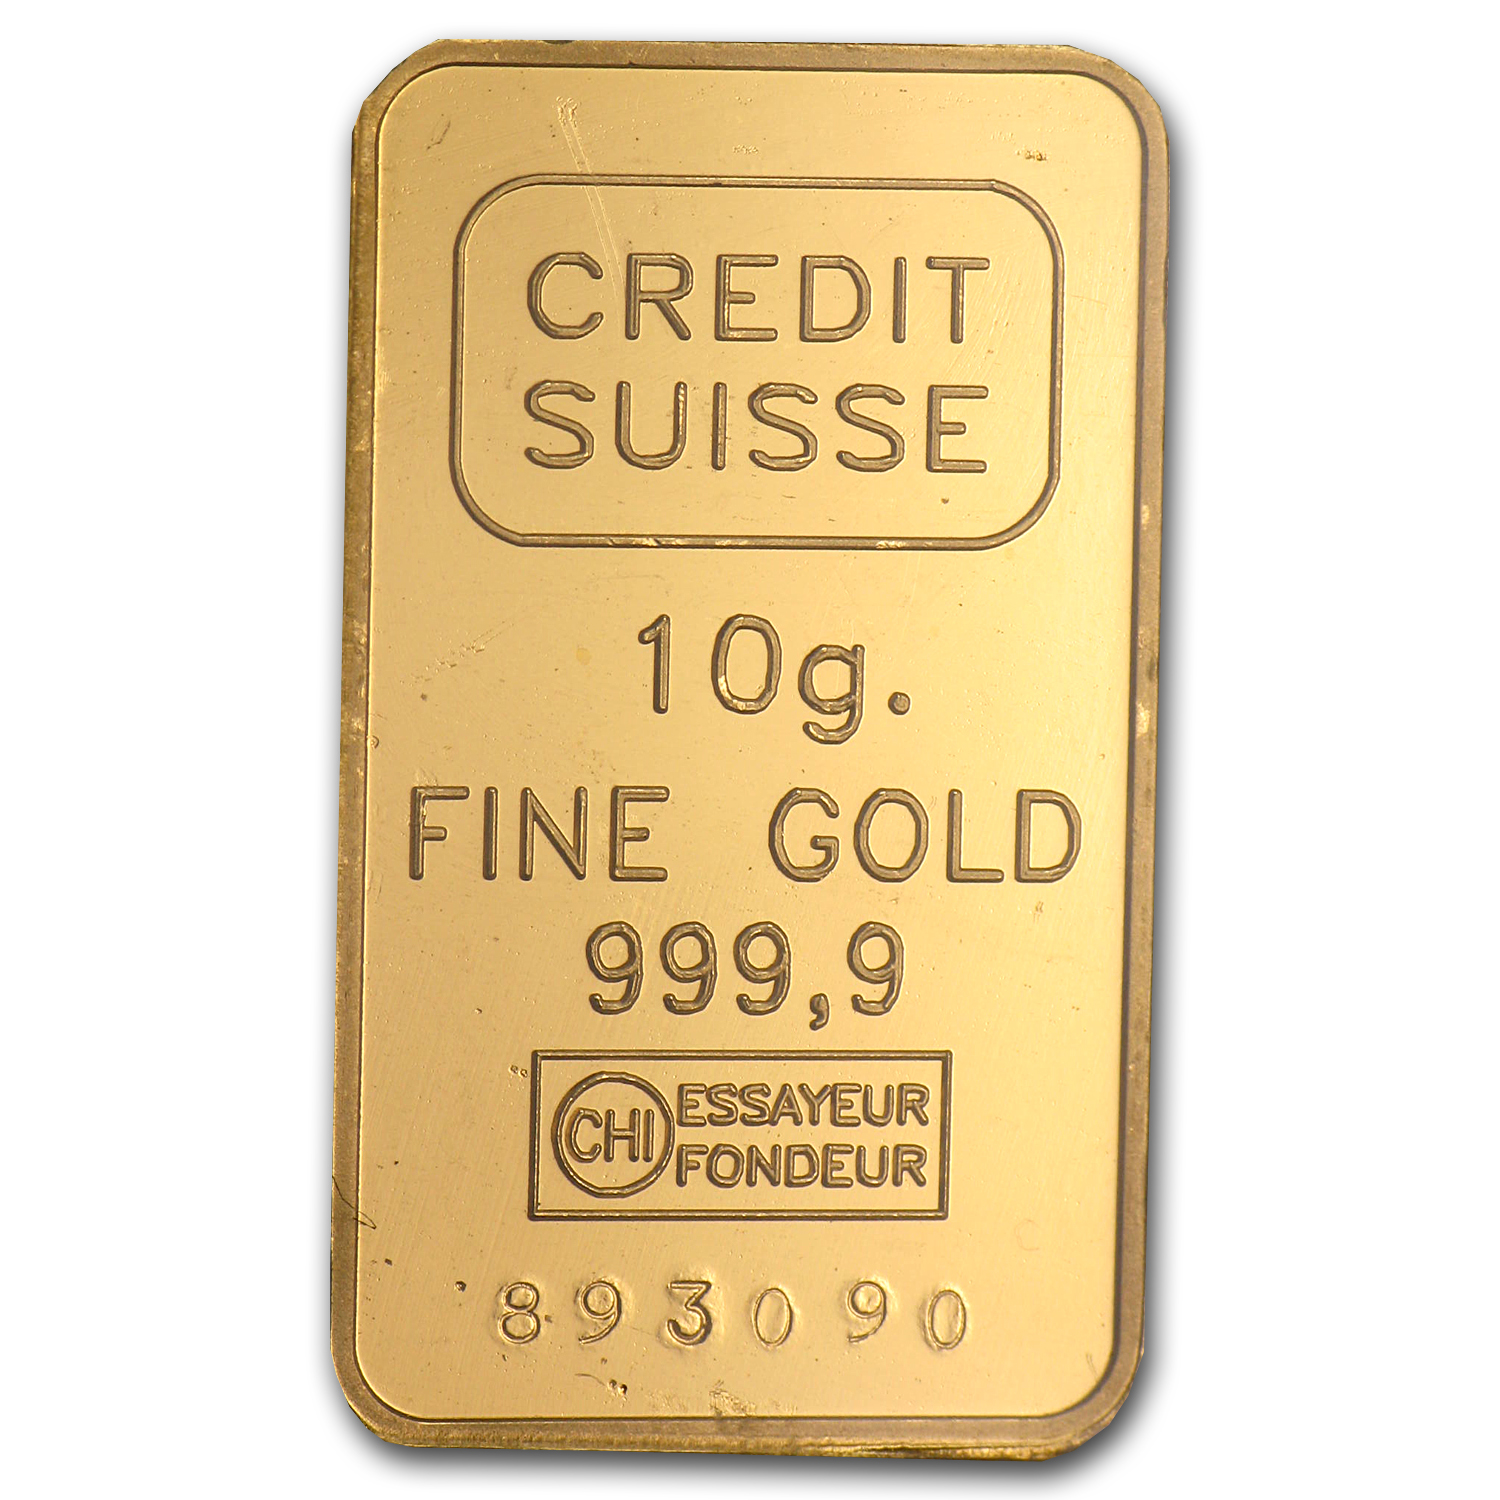 10 gram Gold Bars - Credit Suisse (HILTI Design) (In Assay)